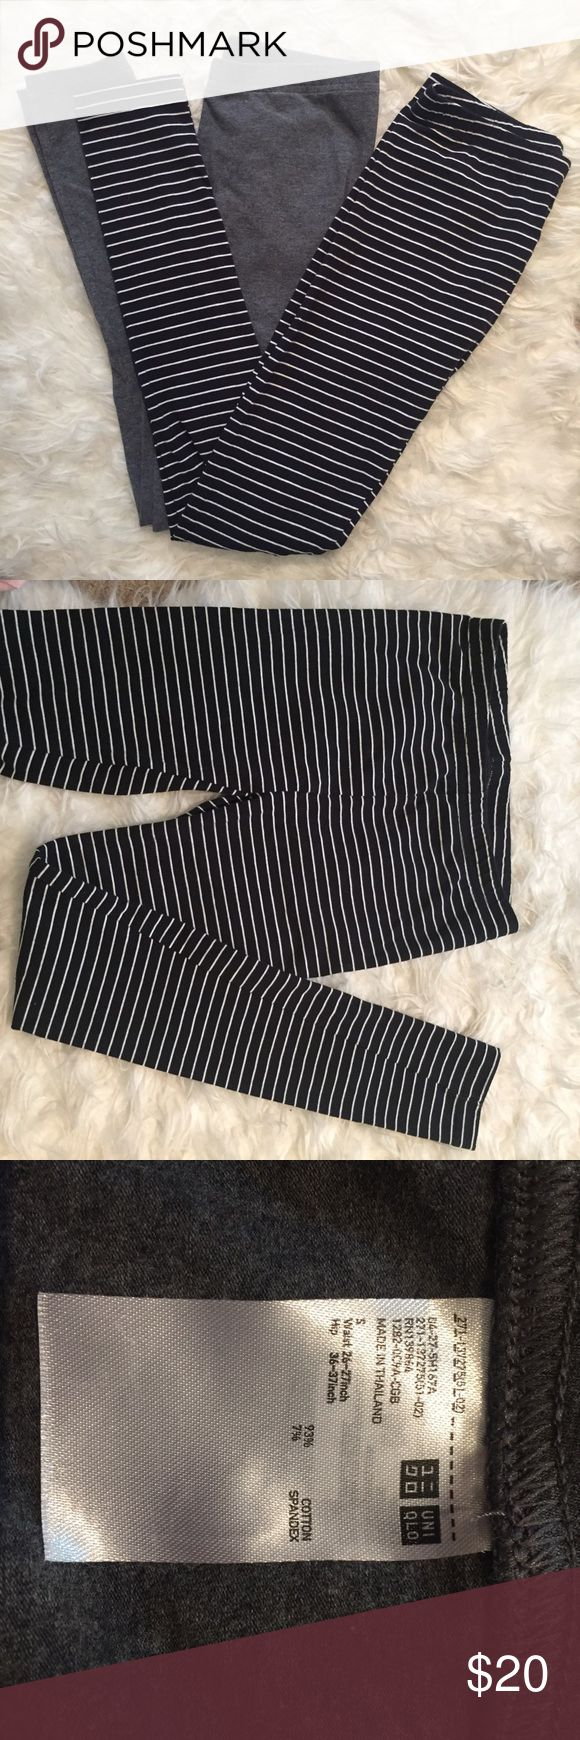 Two Uniqlo leggings! One grey and one b&w striped Leggings from Uniqlo! One is a charcoal grey and one is black with thin white stripes. New, never worn! They are not in the original packaging because I bought them without trying them on and they were too small. Size S fits like an XS! Super soft, comfy cotton jersey material Uniqlo Pants Leggings